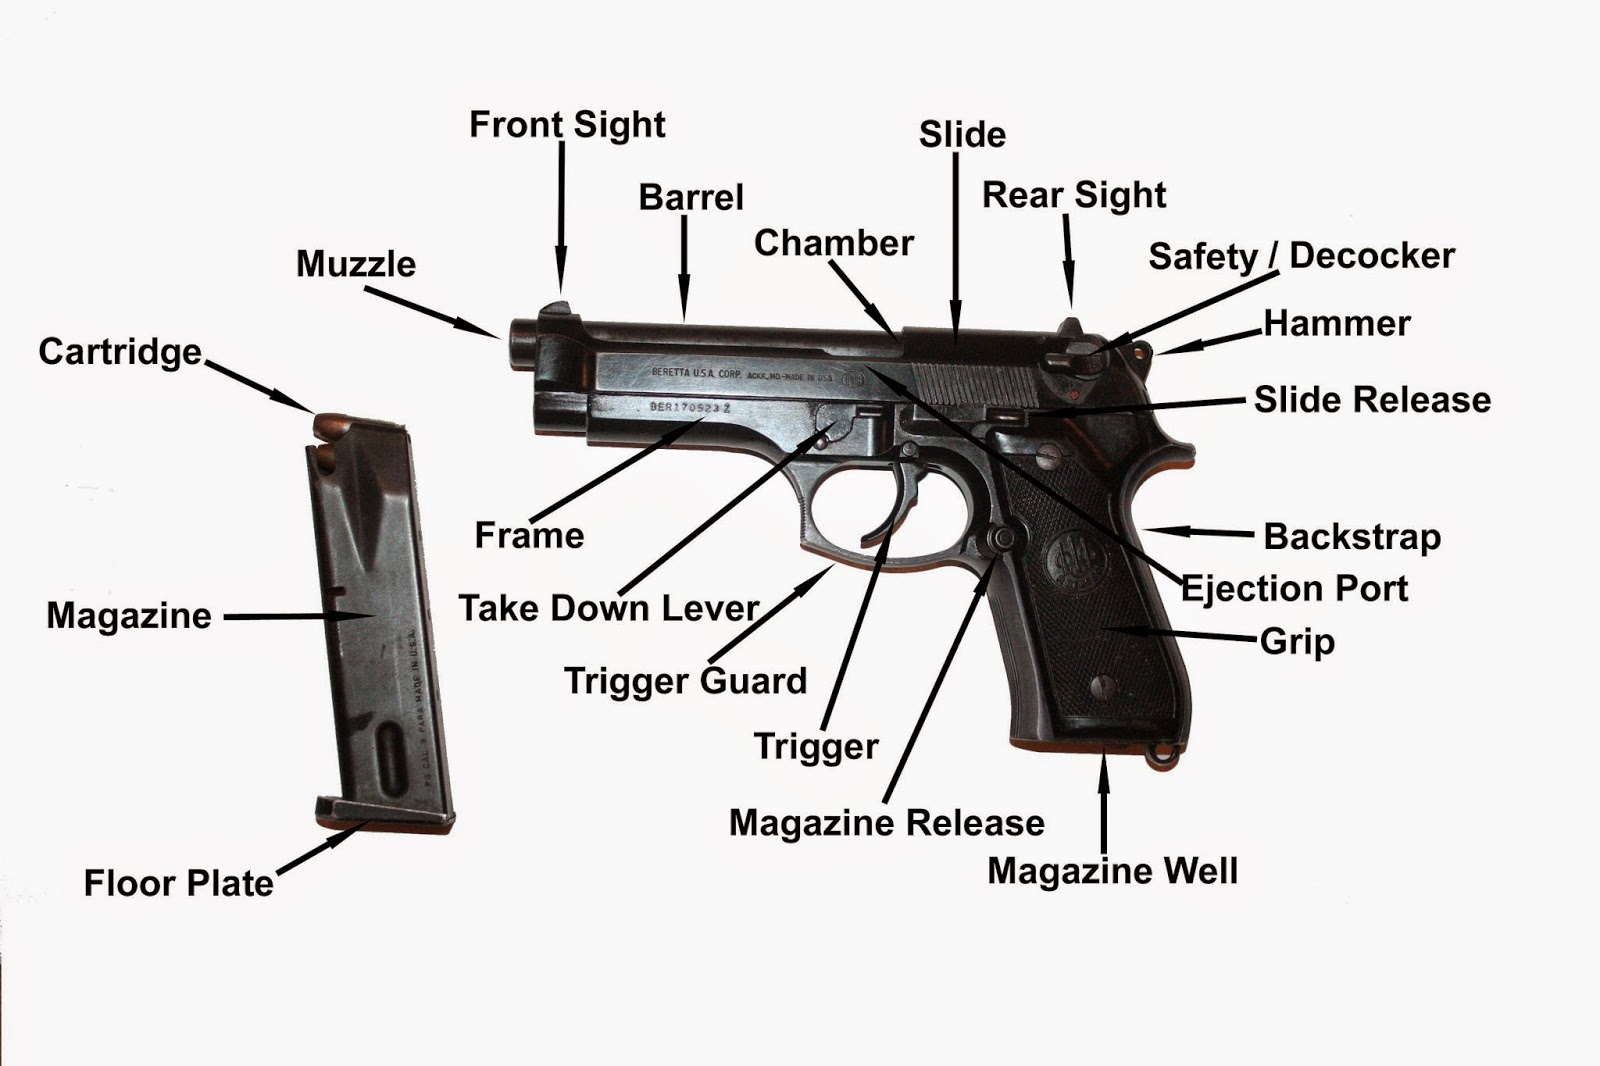 Revolver Diagram Gun - Wiring Diagrams on